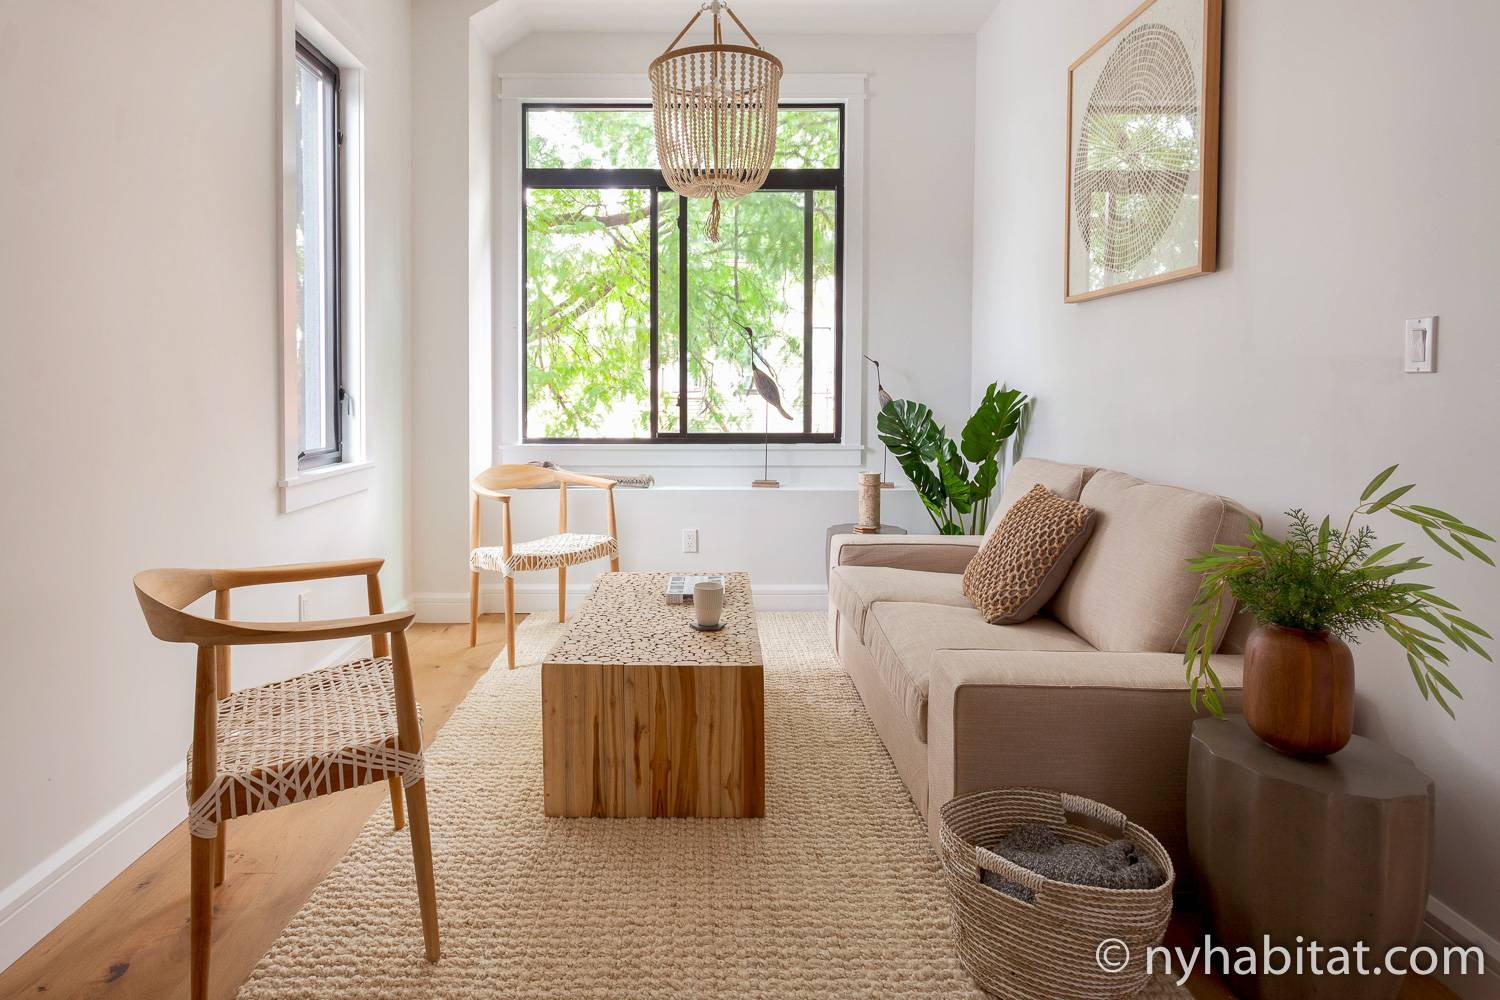 Image of living area in NY-17881 with sofa, chairs, and wooden coffee table.